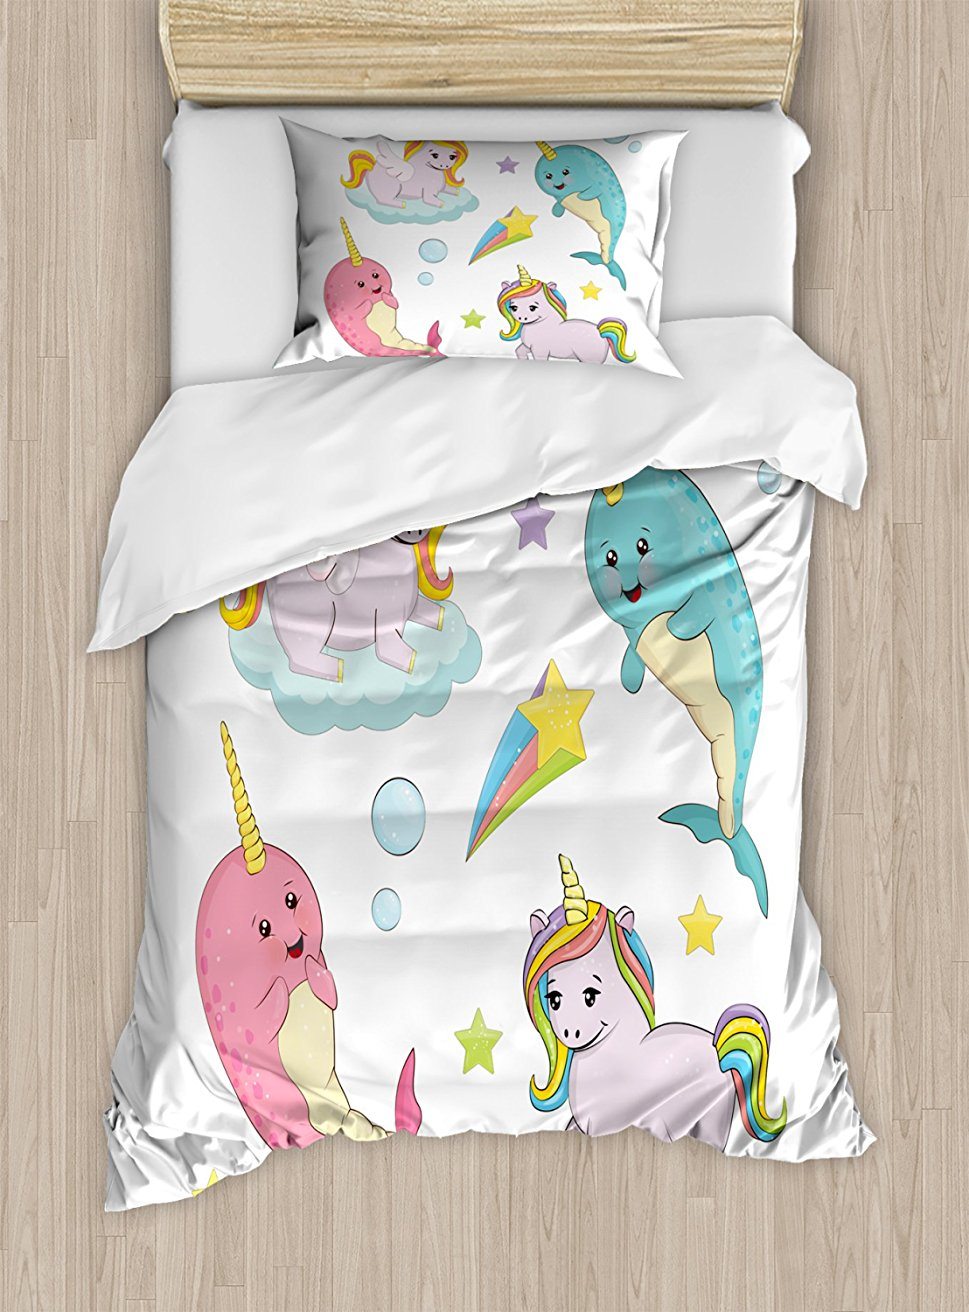 Narwhal Duvet Cover Set Rainbow Colored Unicorns of the Land and Ocean Girly Illustration Colorful Cartoon Decor Bedding Set